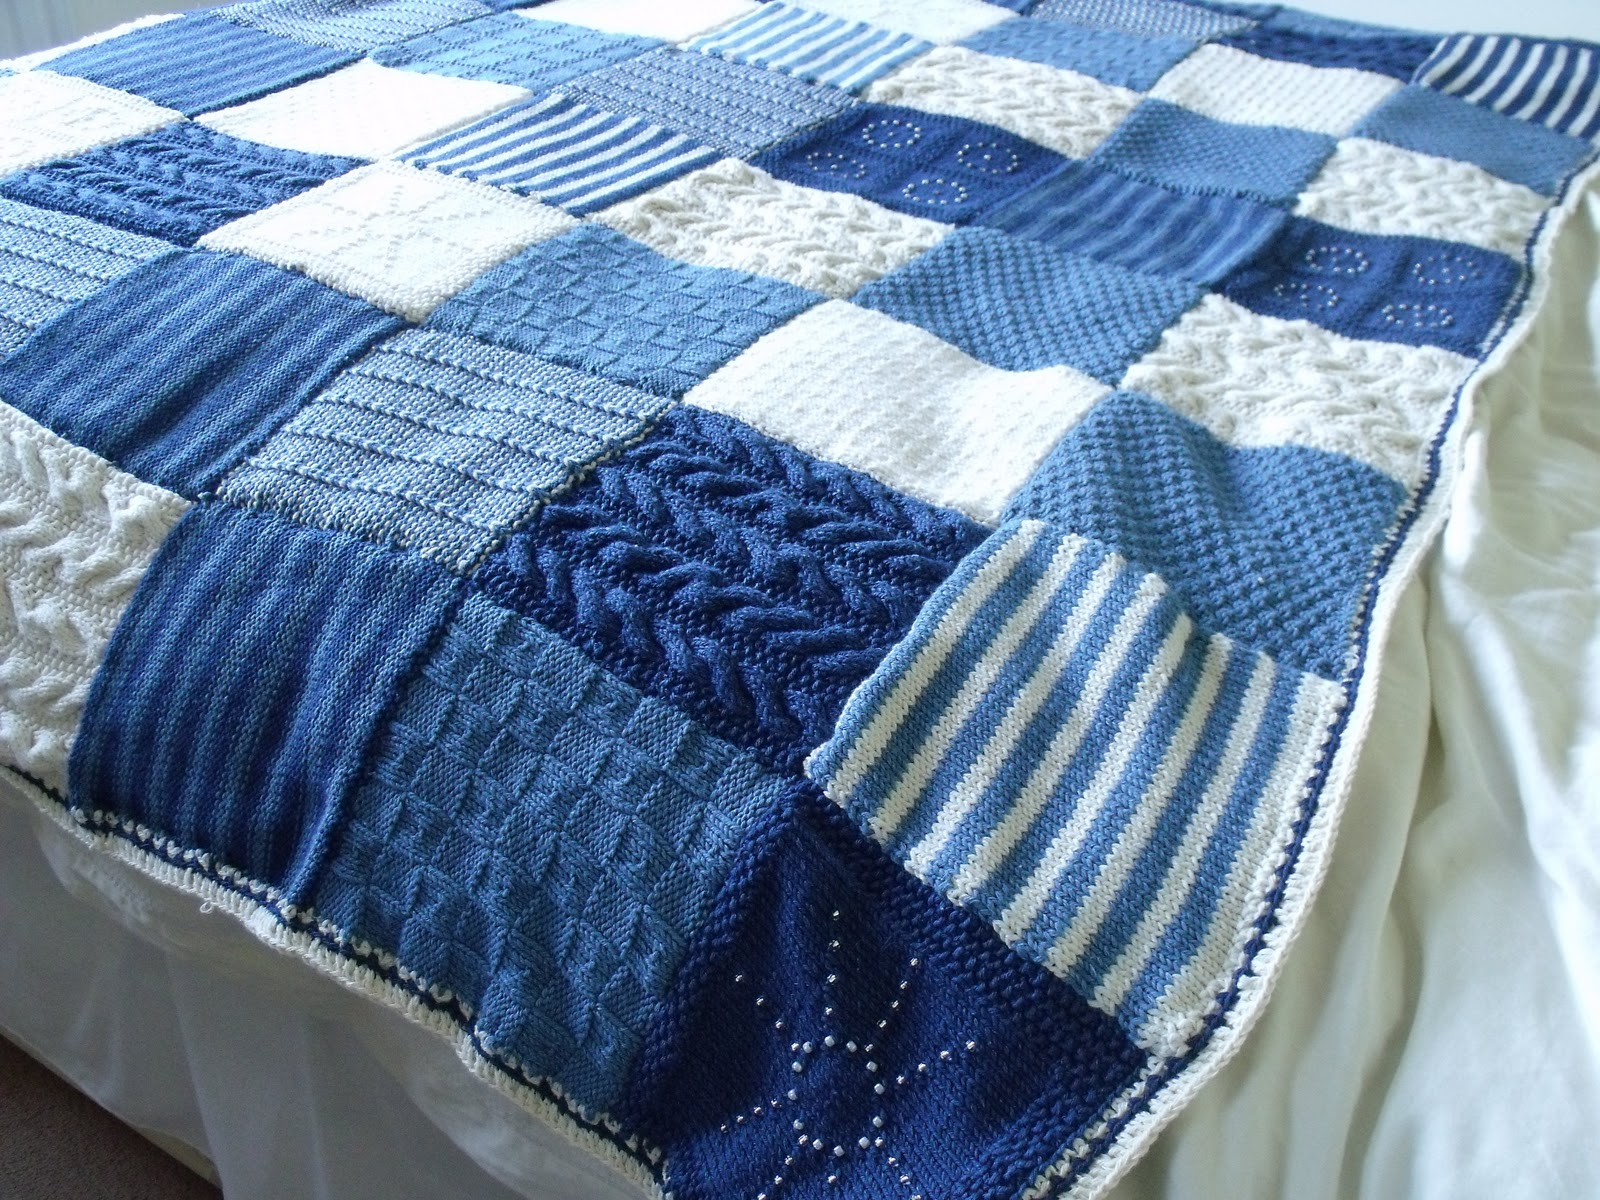 Knitting Pattern For A Throw Blanket : Knit It, Grow It, Cook It: Knitted blanket finished.